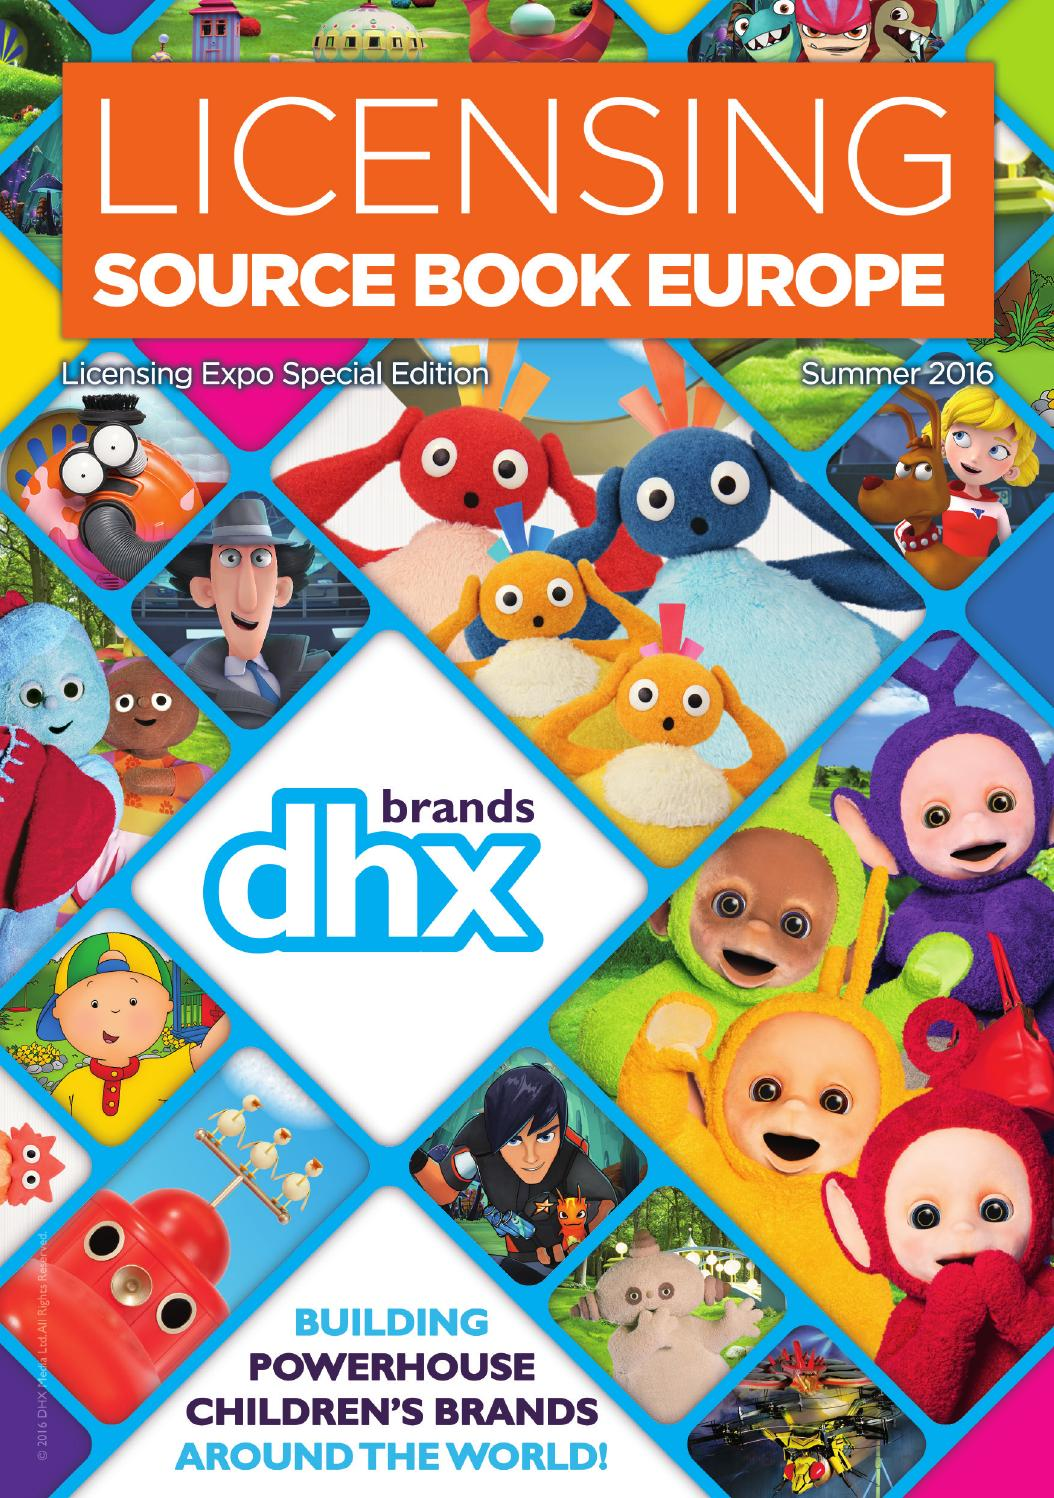 Licensing source book europe summer 2016 issue by max publishing licensing source book europe summer 2016 issue by max publishing issuu solutioingenieria Image collections